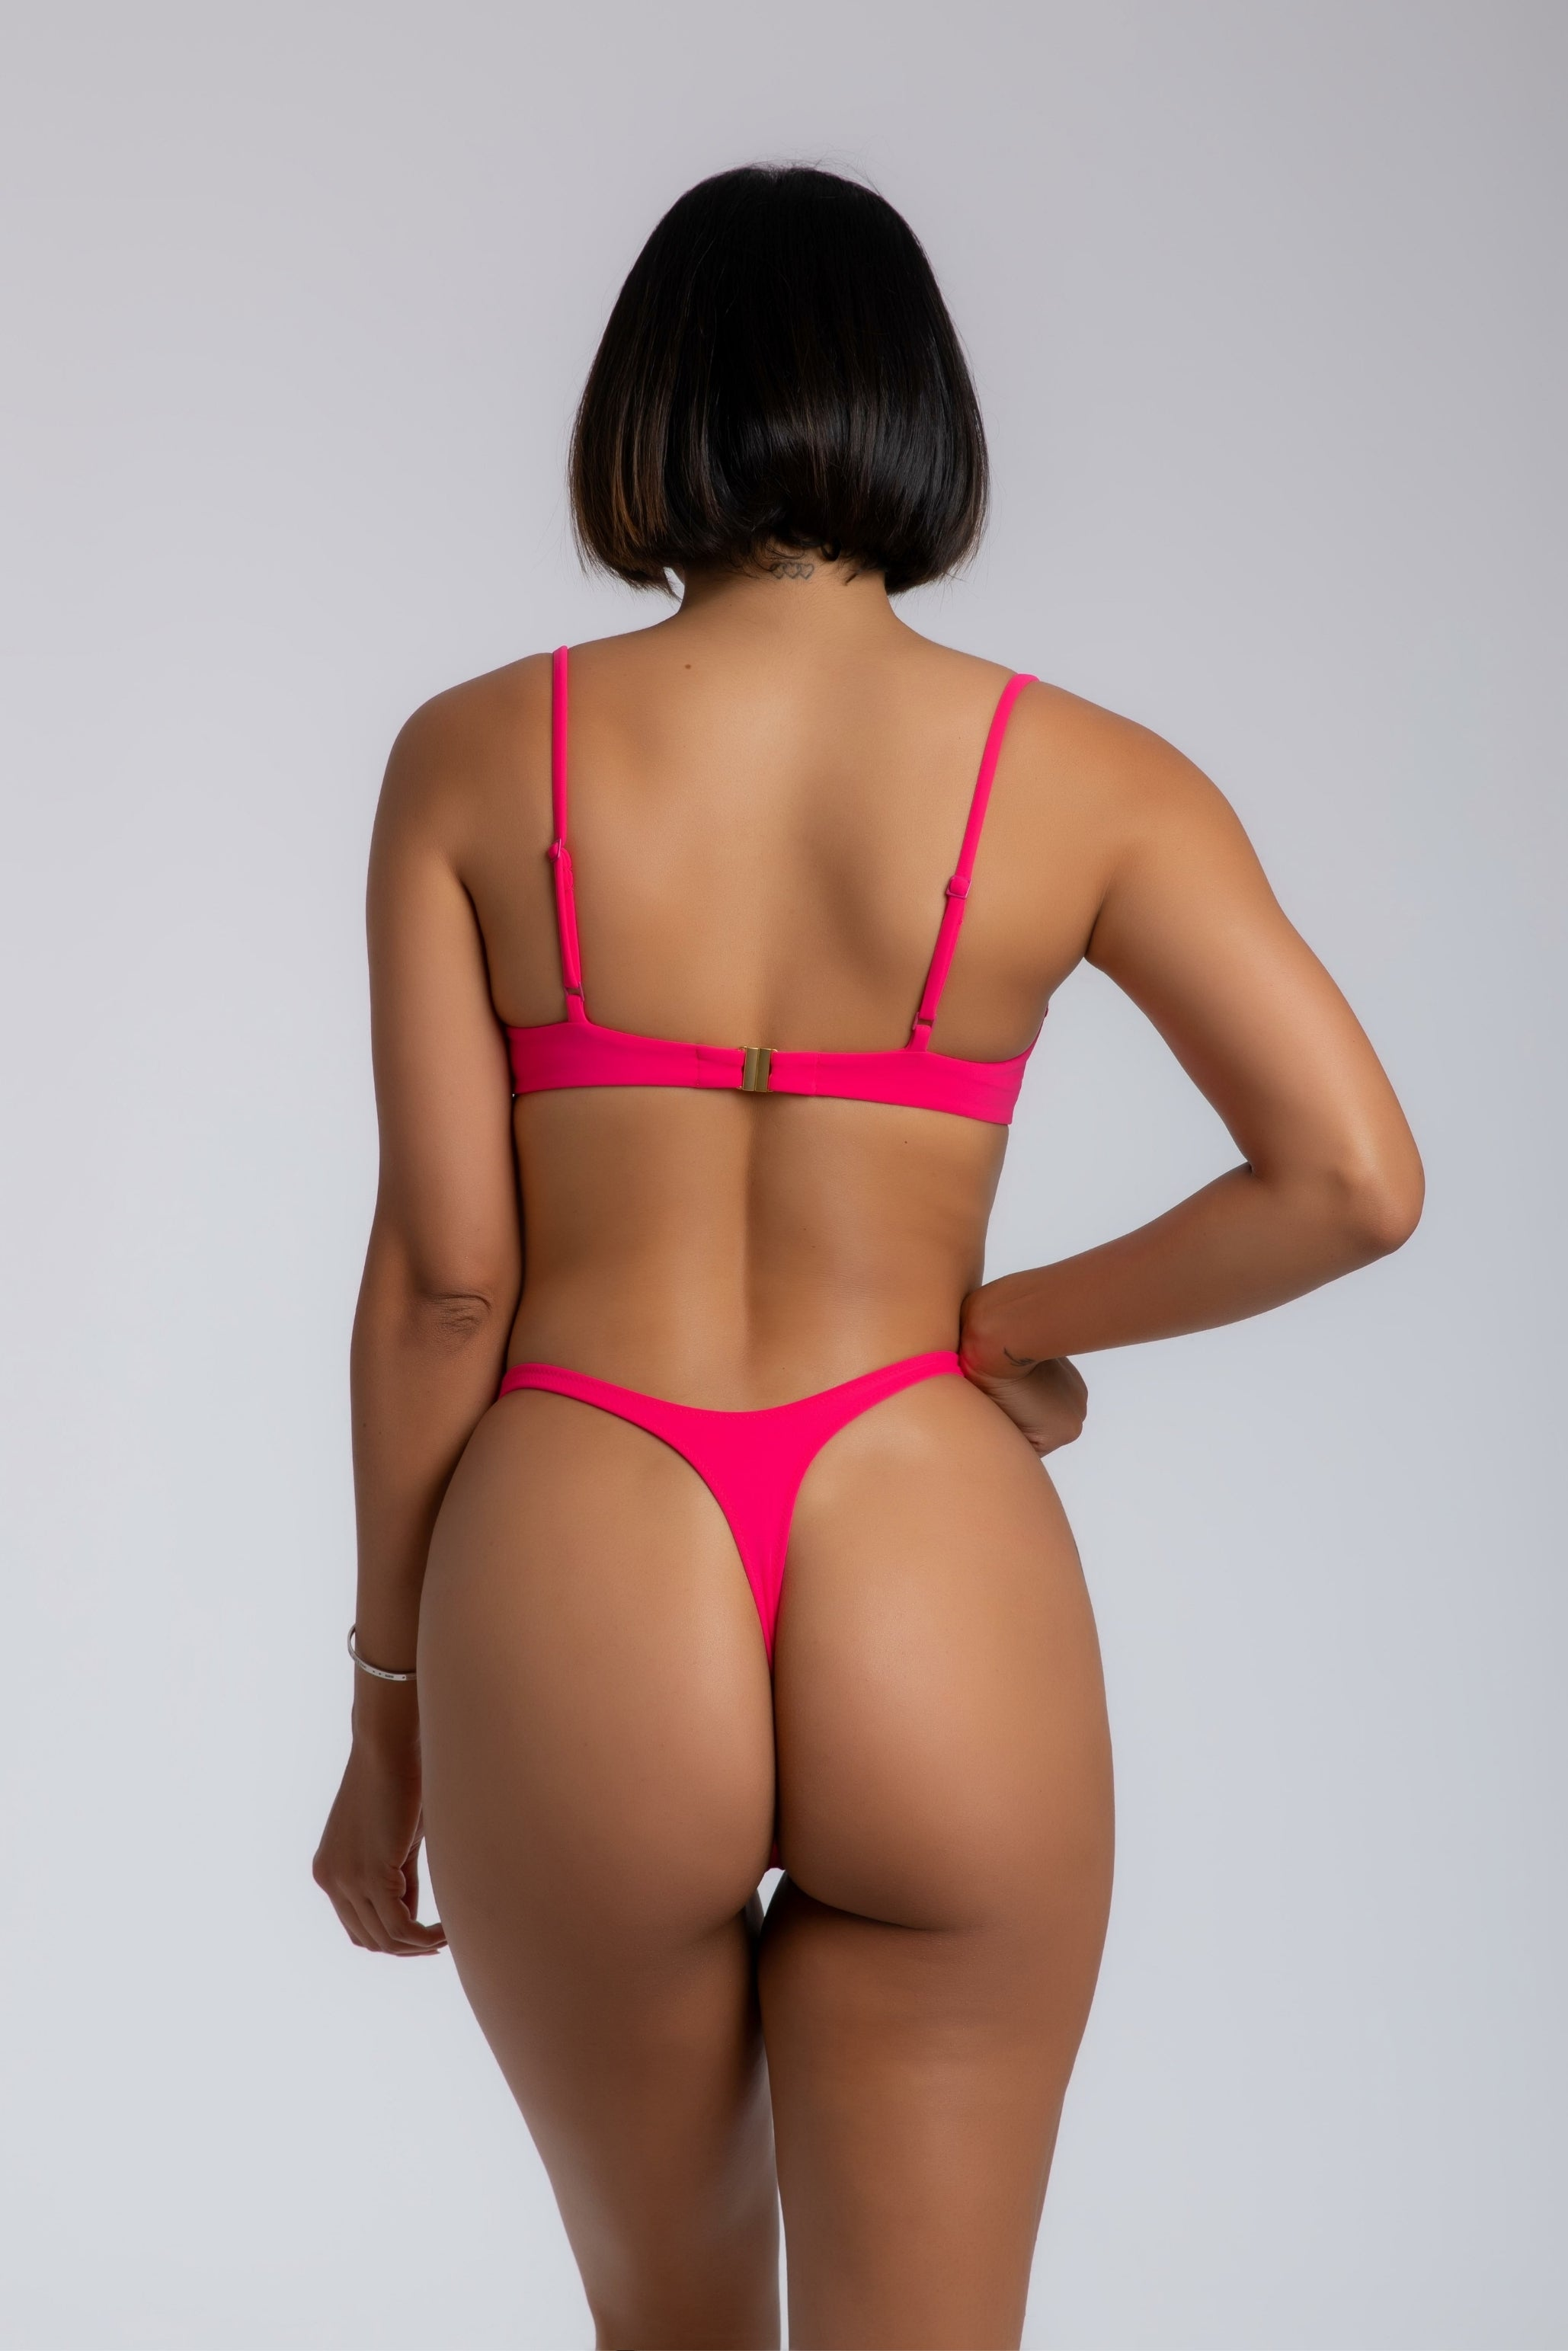 Cardi V Bottom - mishmish swimwear - Modalova